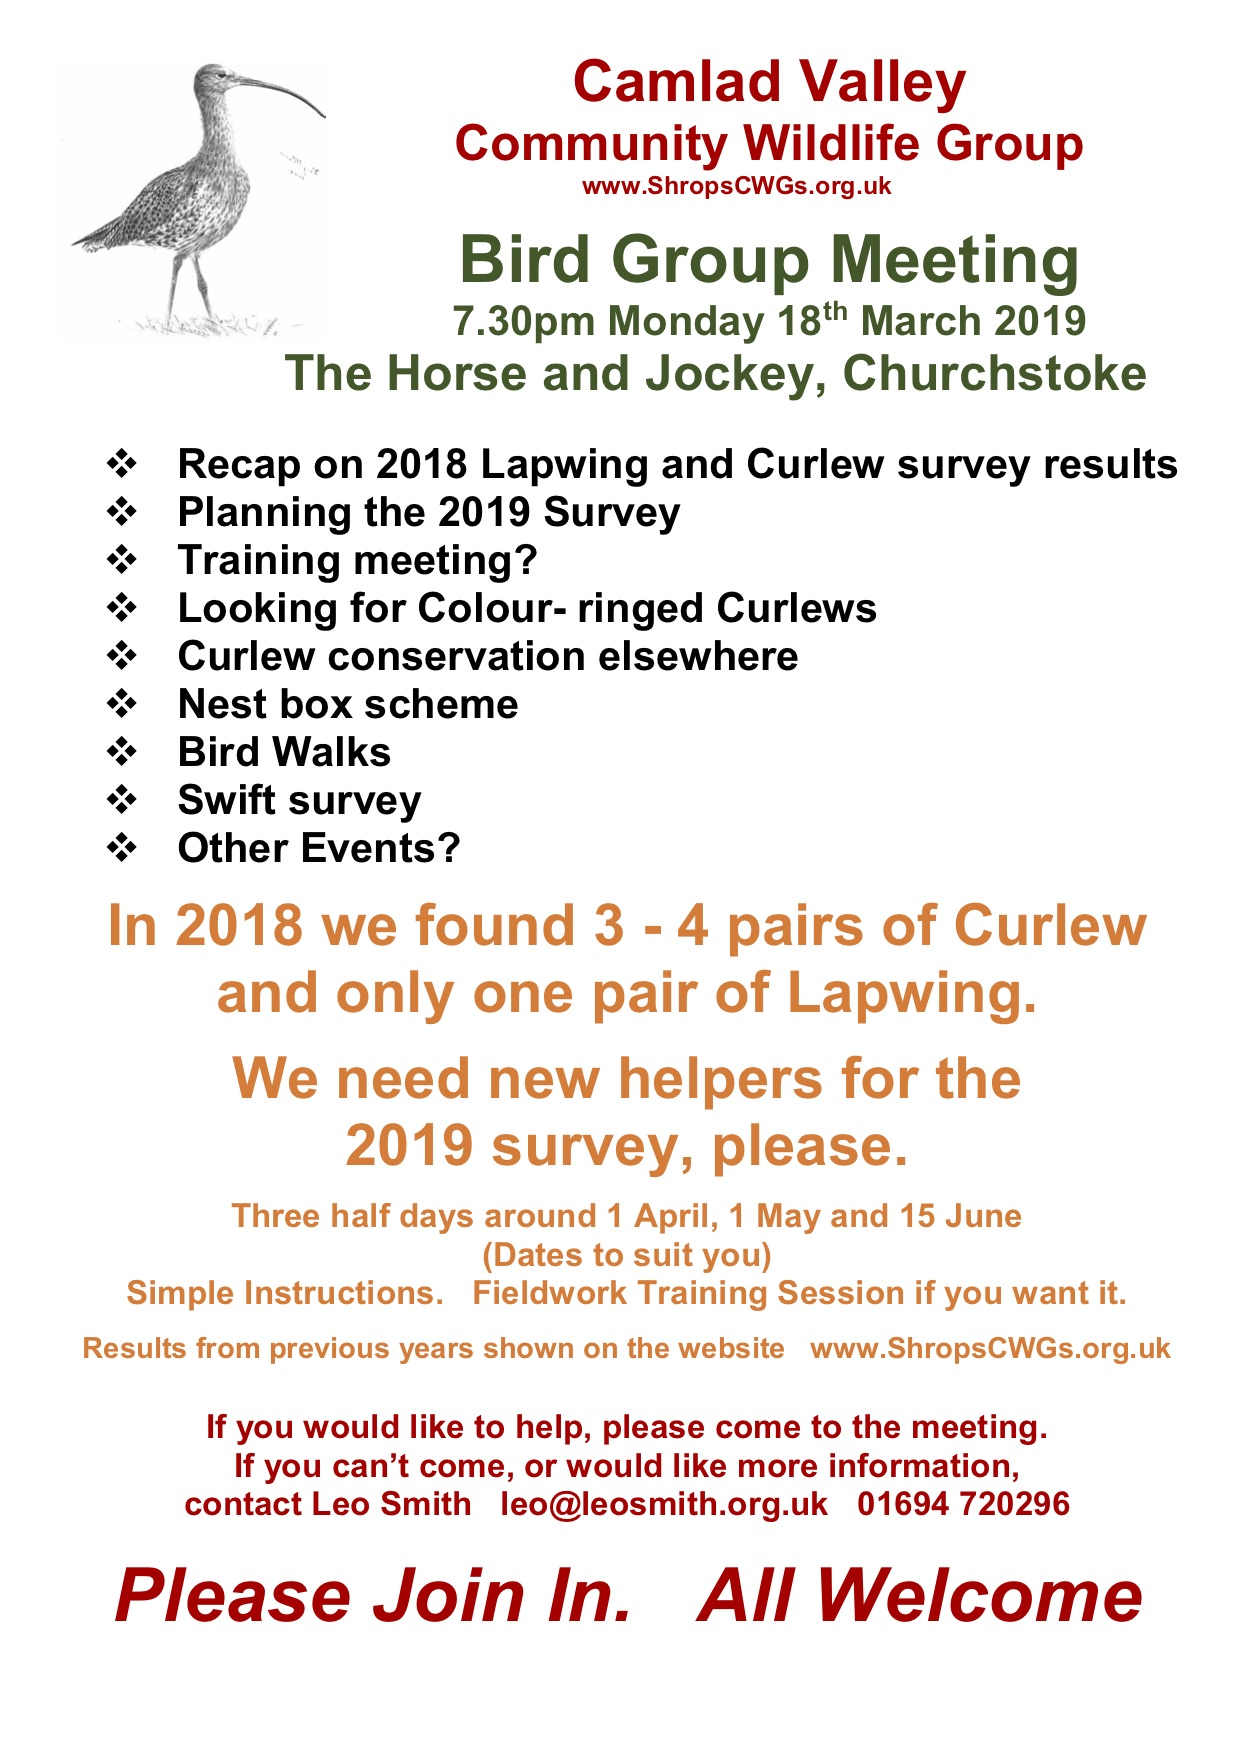 Camlad Valley CWG Bird Group 18 March 2019